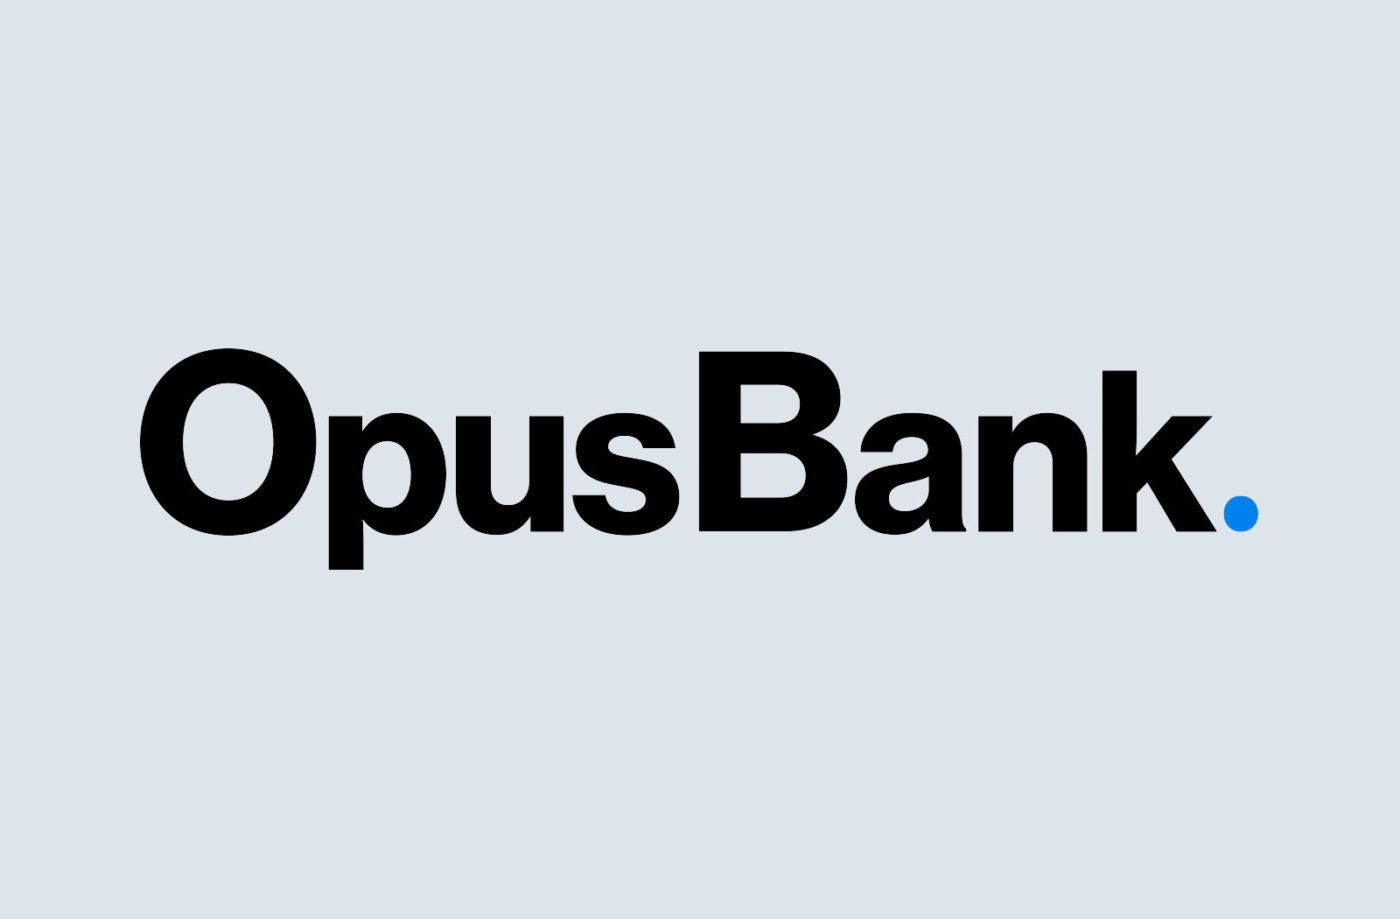 T-street Capital - Opus Bank Receives Approval for Sponsored Funds SBIC License